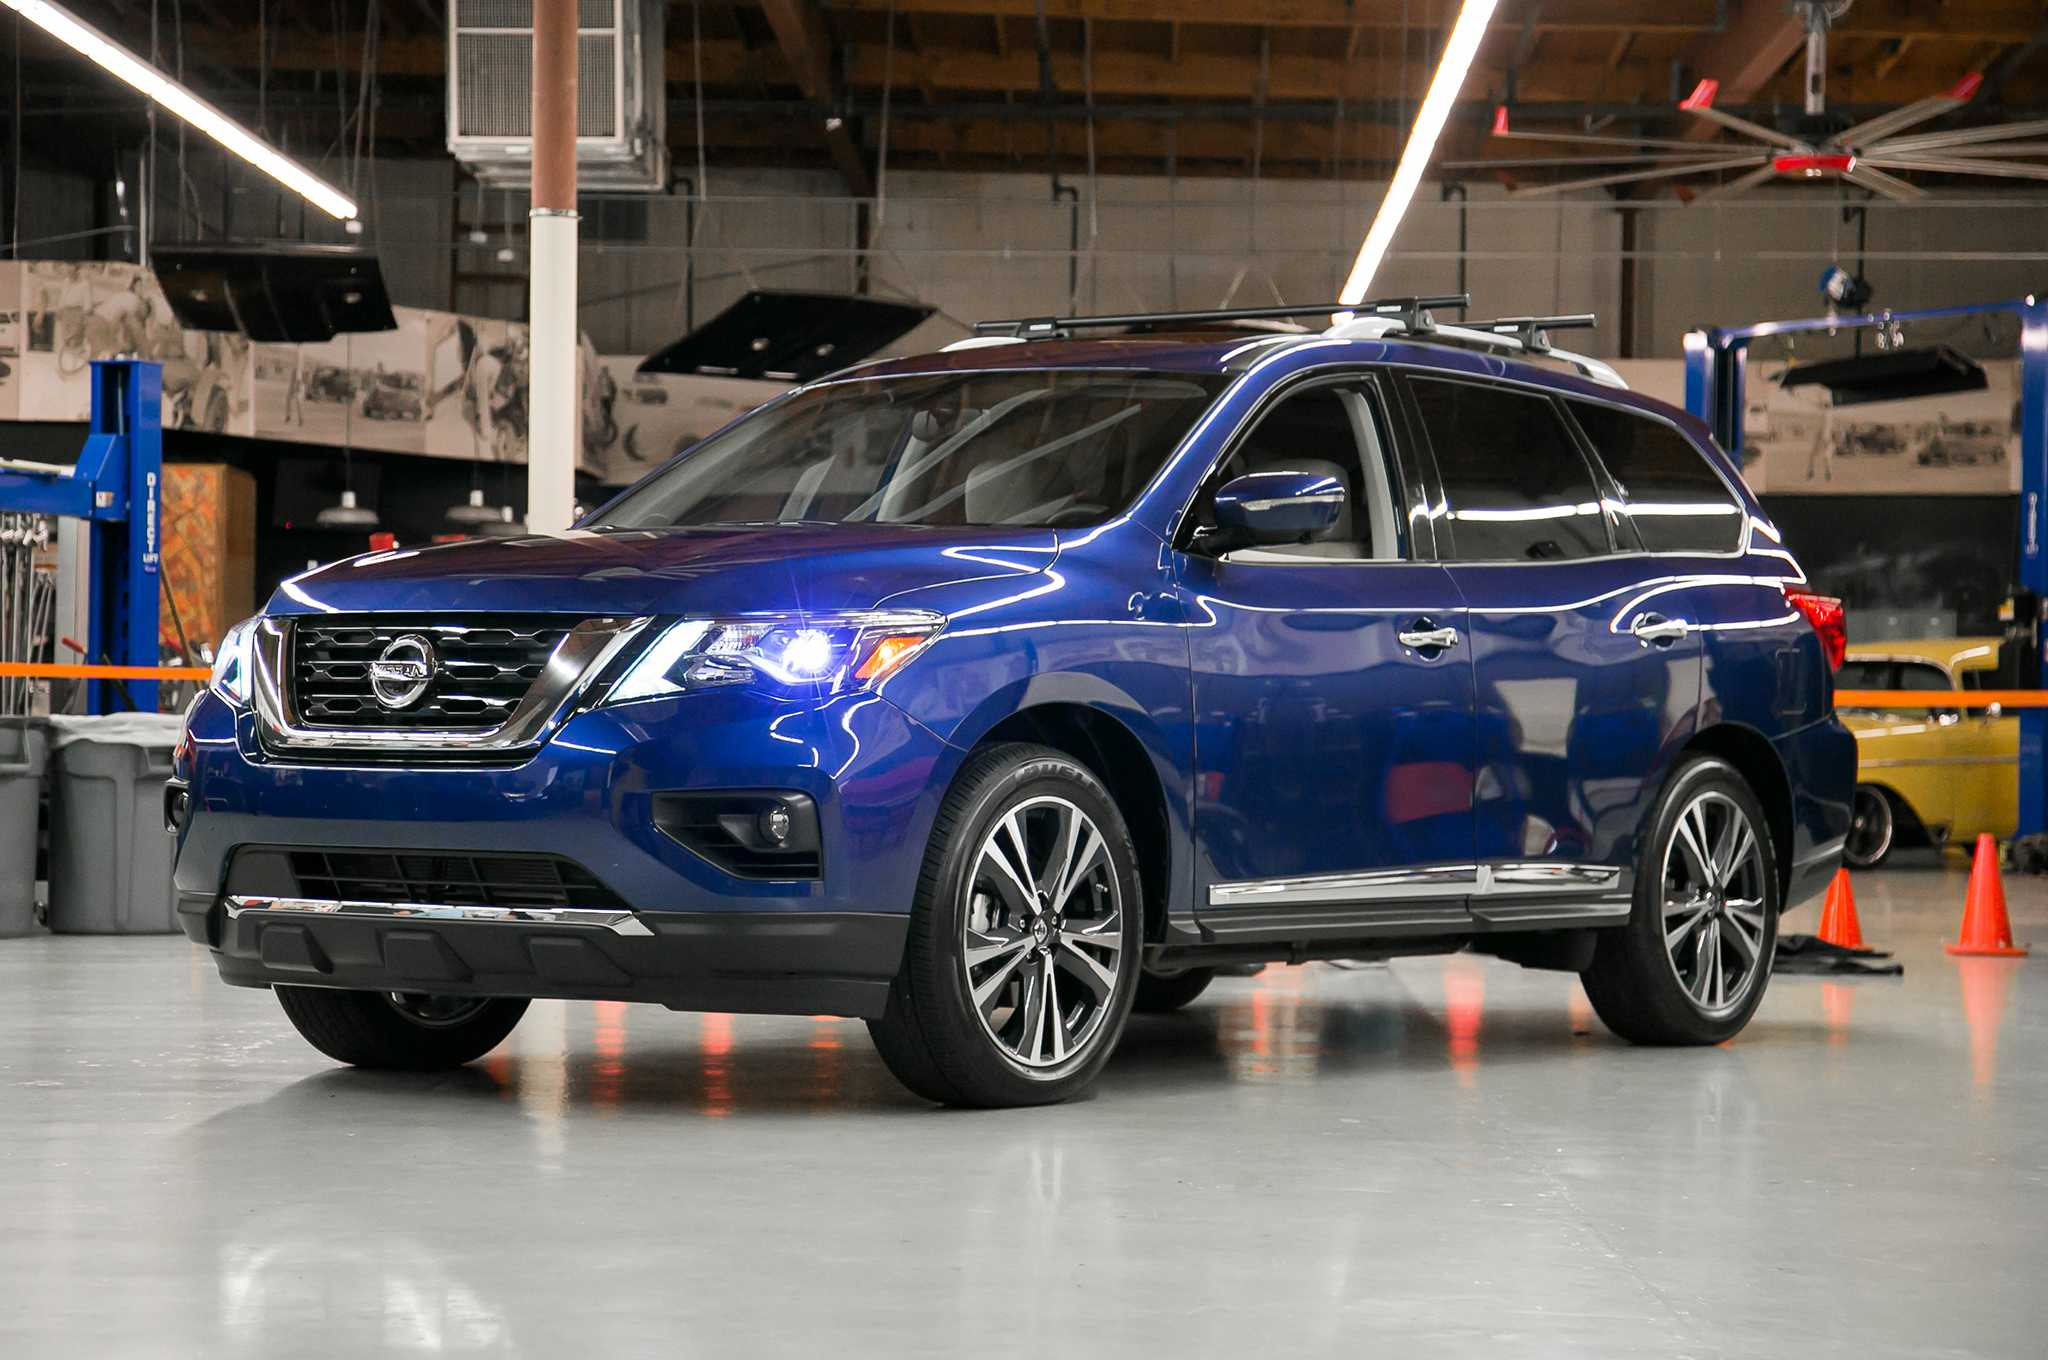 2017 Nissan Pathfinder Pricing and Trimline Revealed, Starts At $30,890